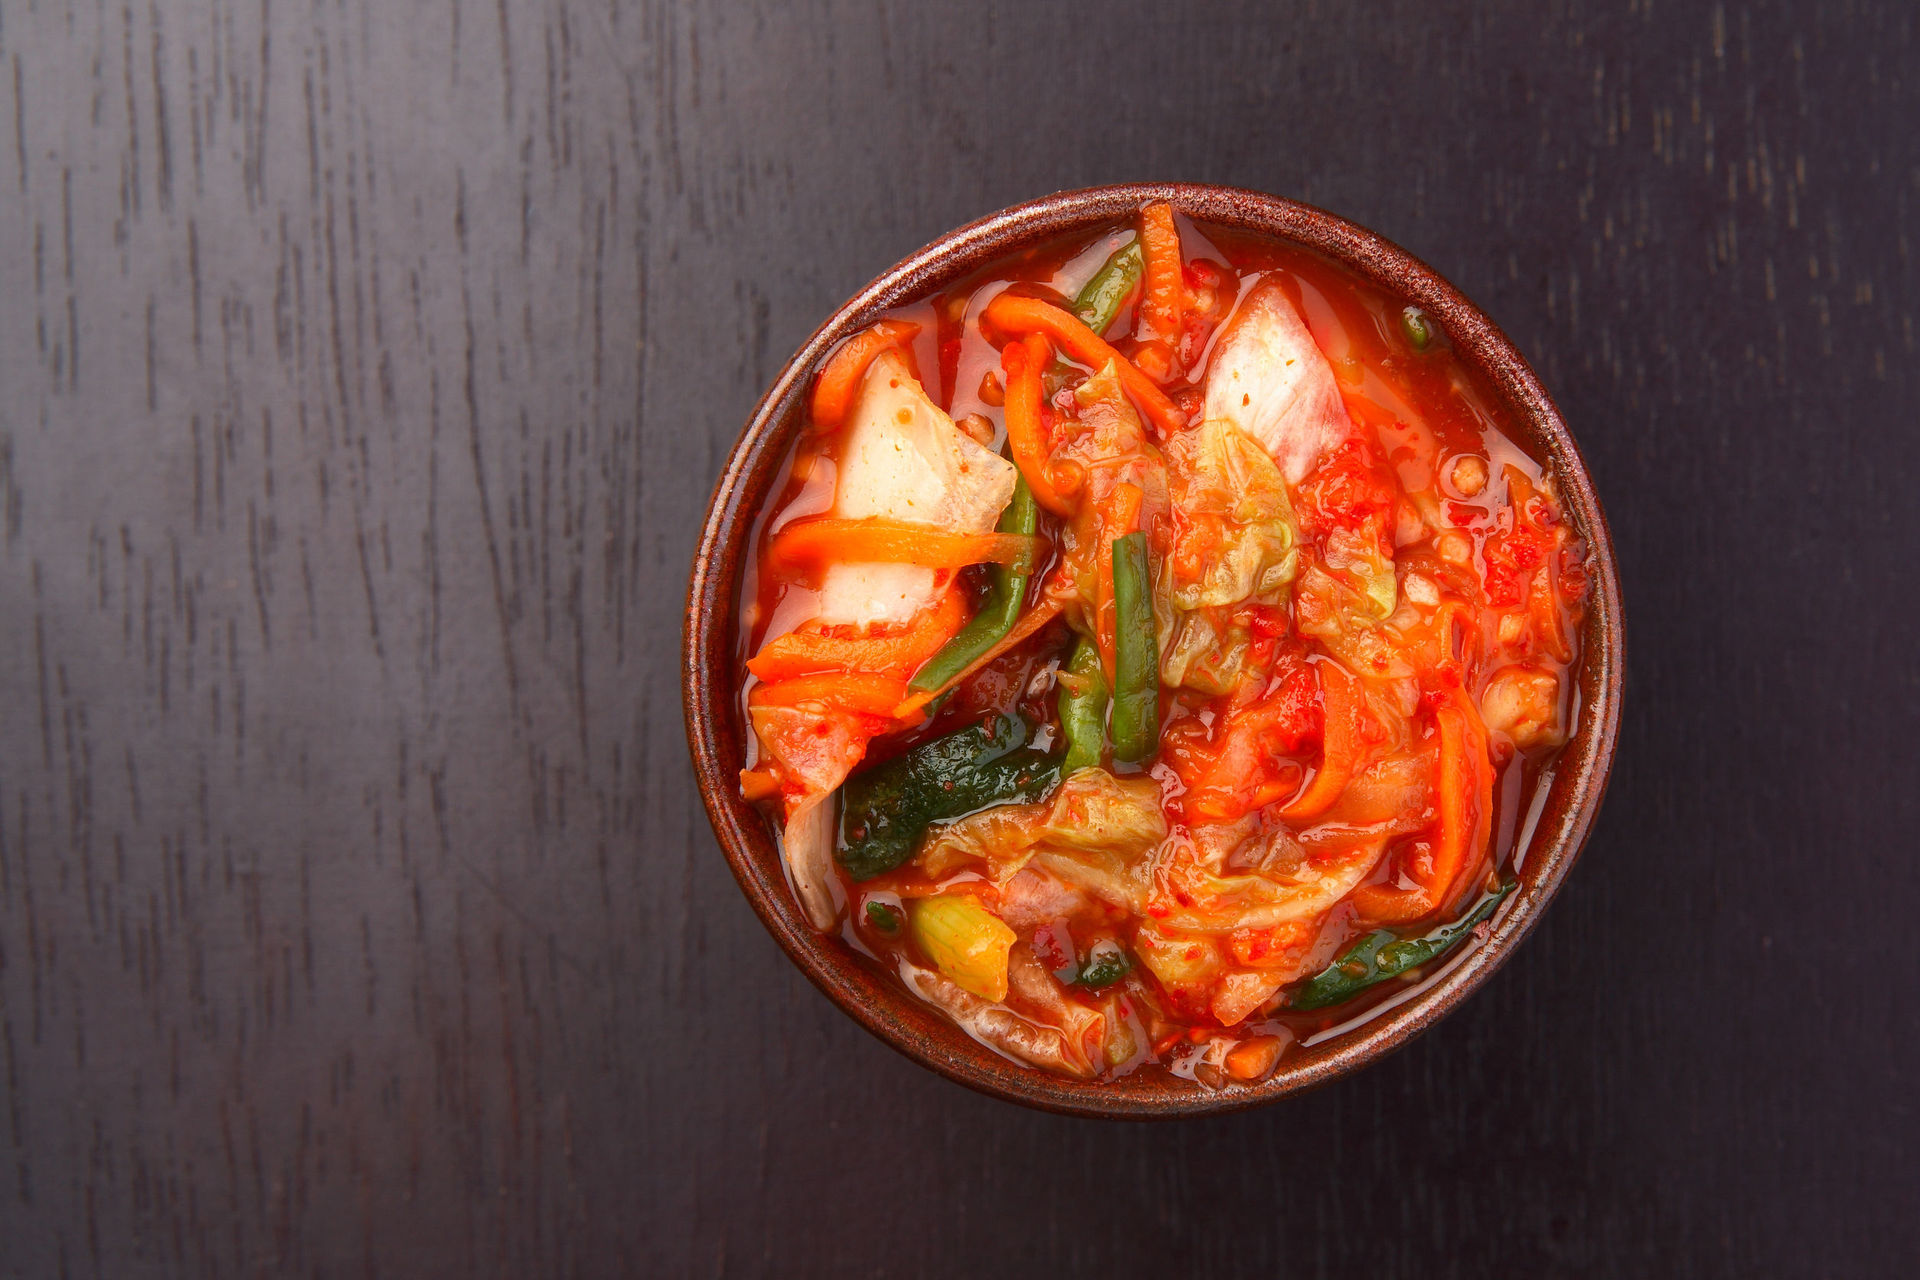 New study finds kimchi could 'reverse baldness'